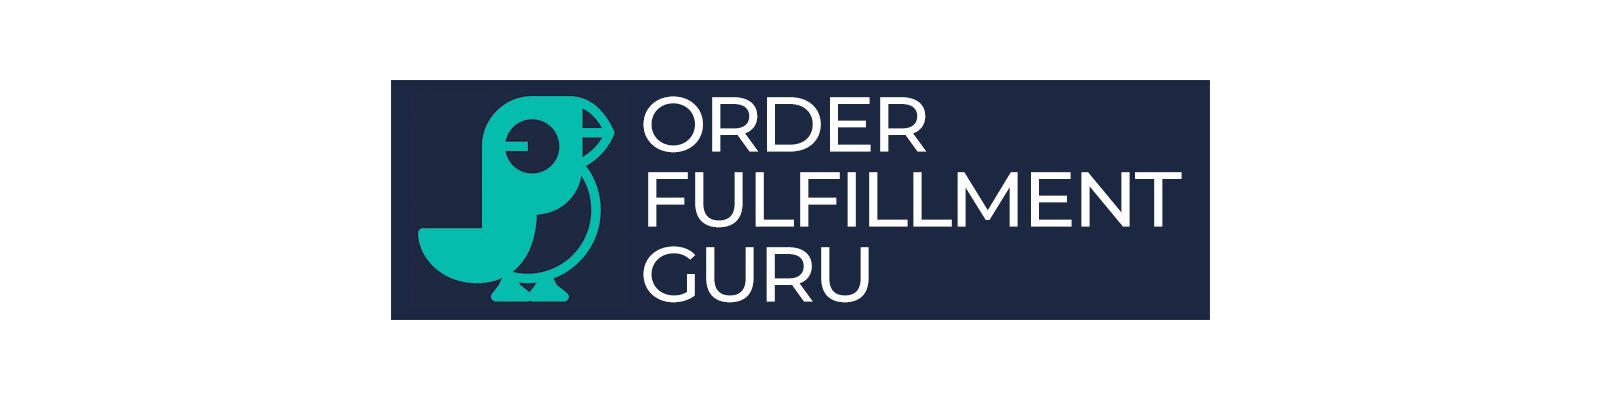 Order Fulfillment Guru